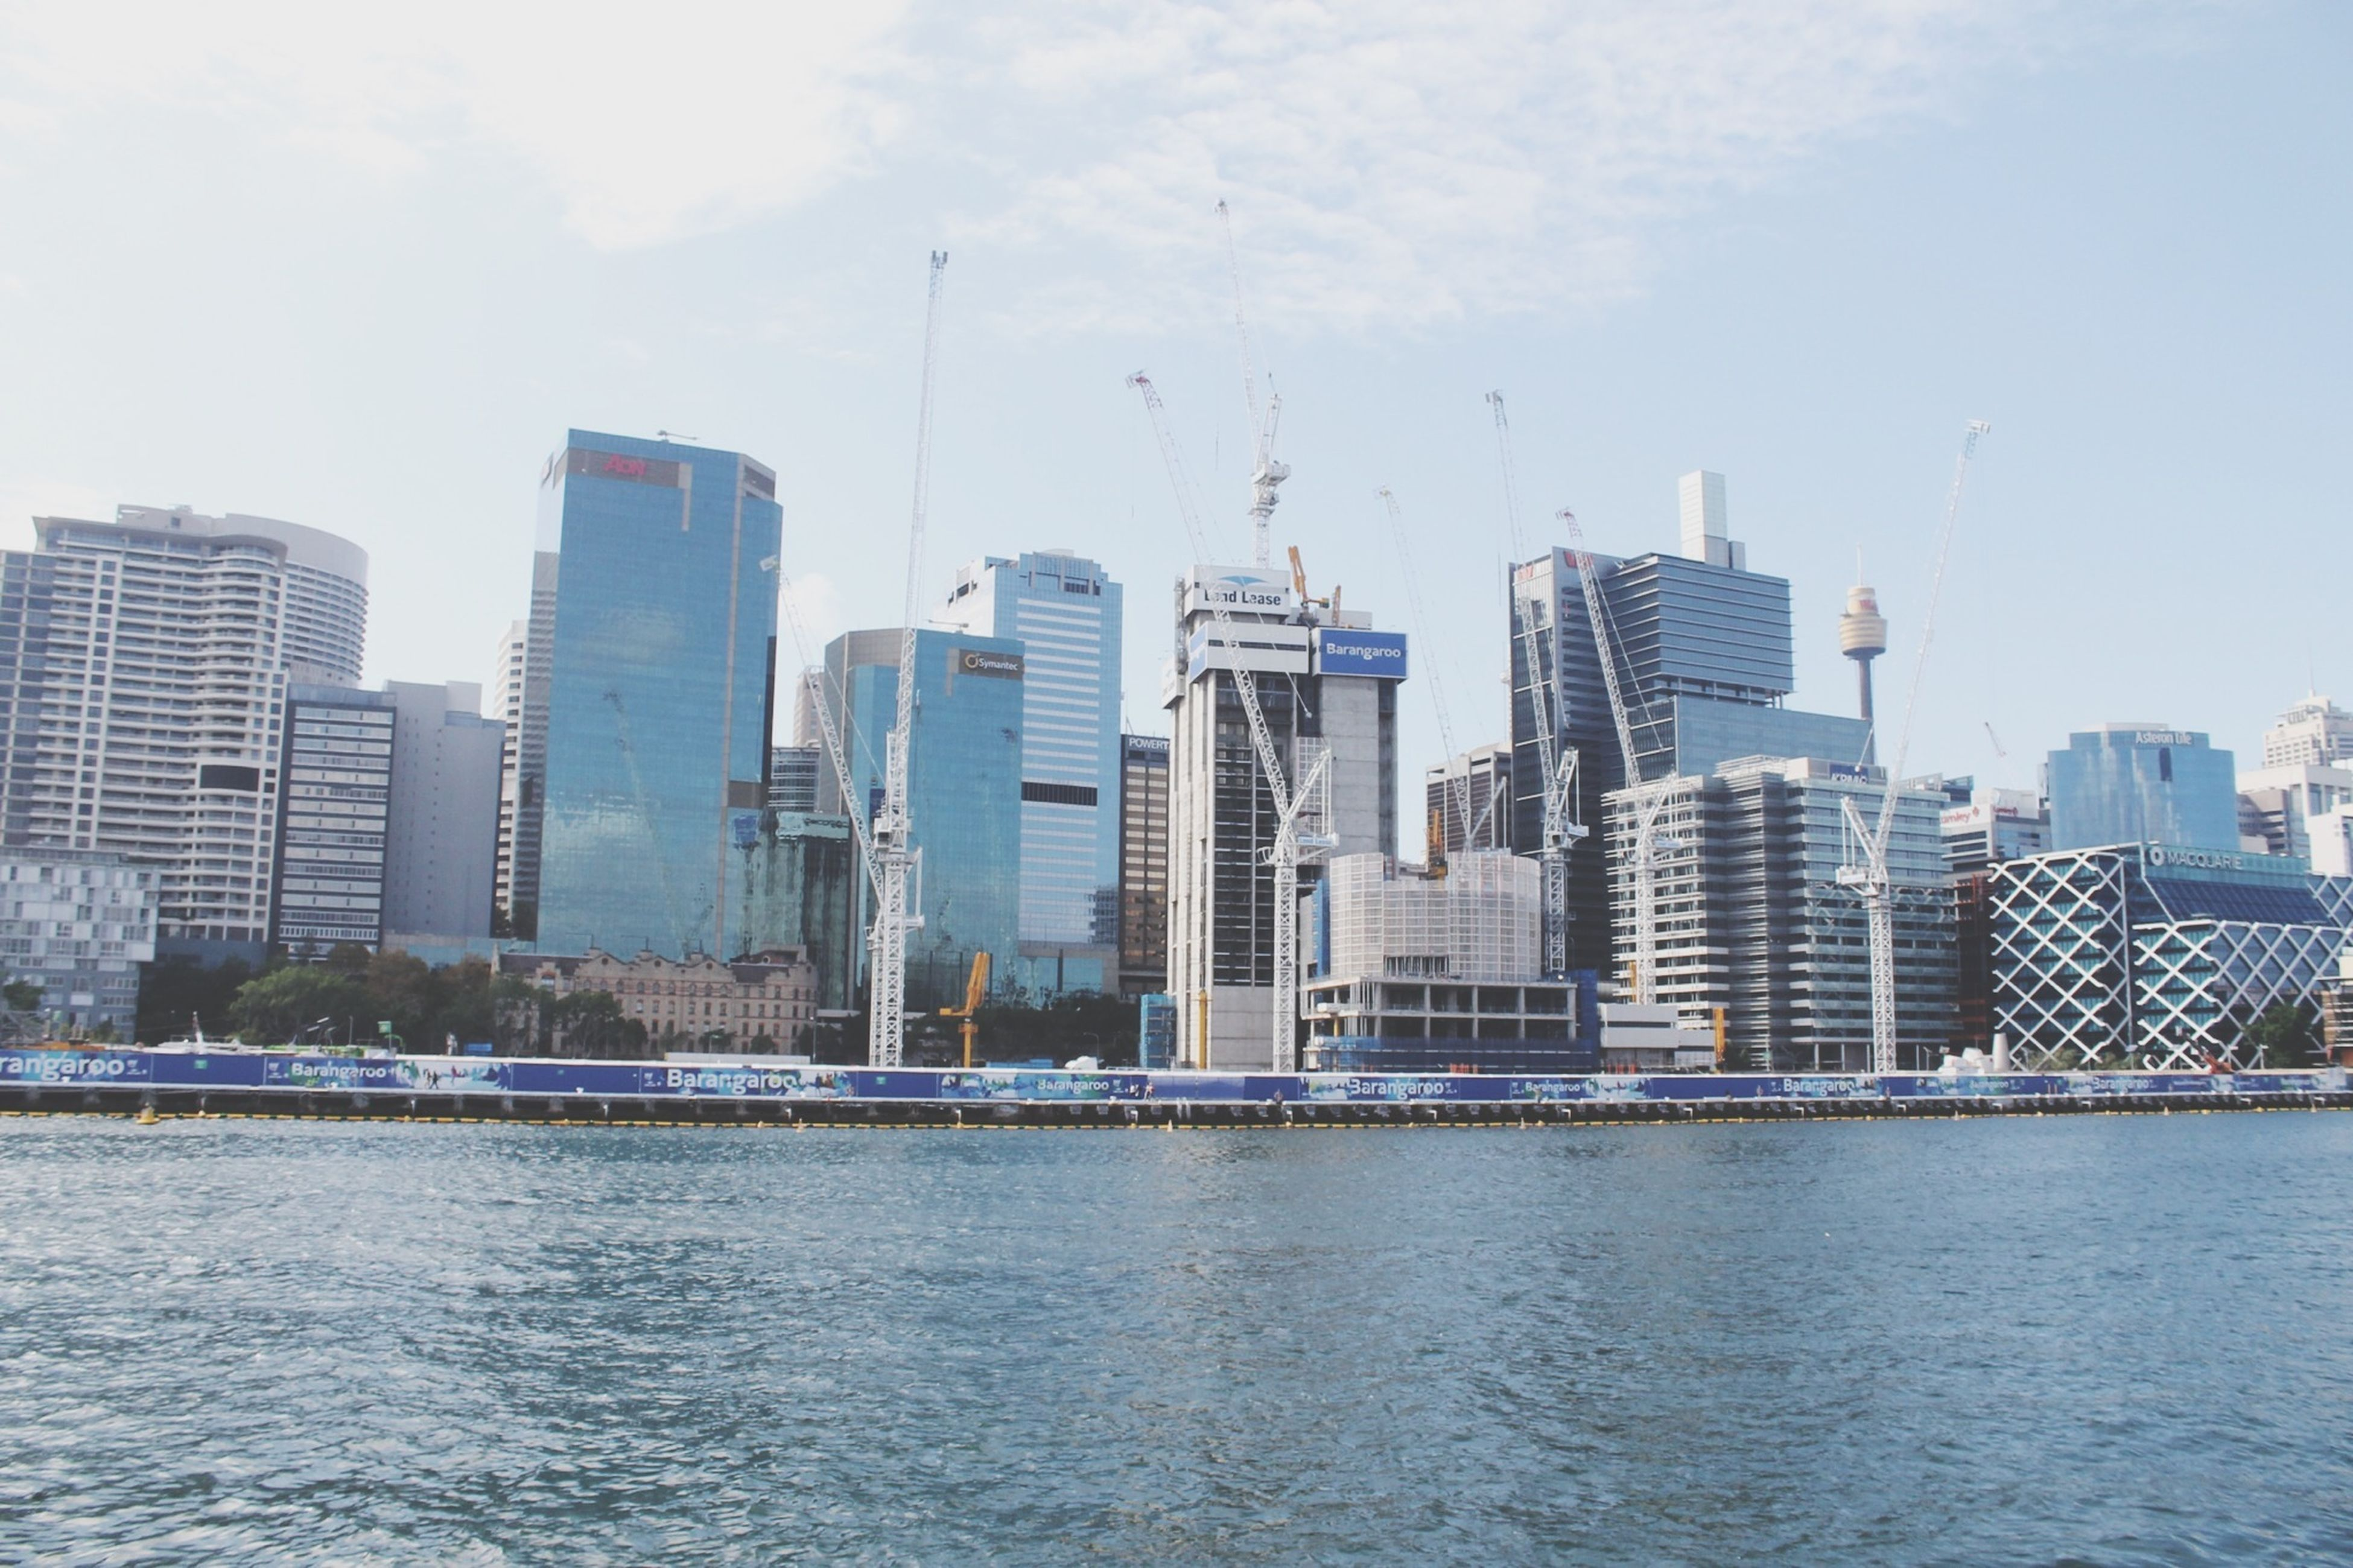 building exterior, city, skyscraper, architecture, built structure, cityscape, water, urban skyline, office building, waterfront, tall - high, modern, sky, river, tower, financial district, development, skyline, tall, sea